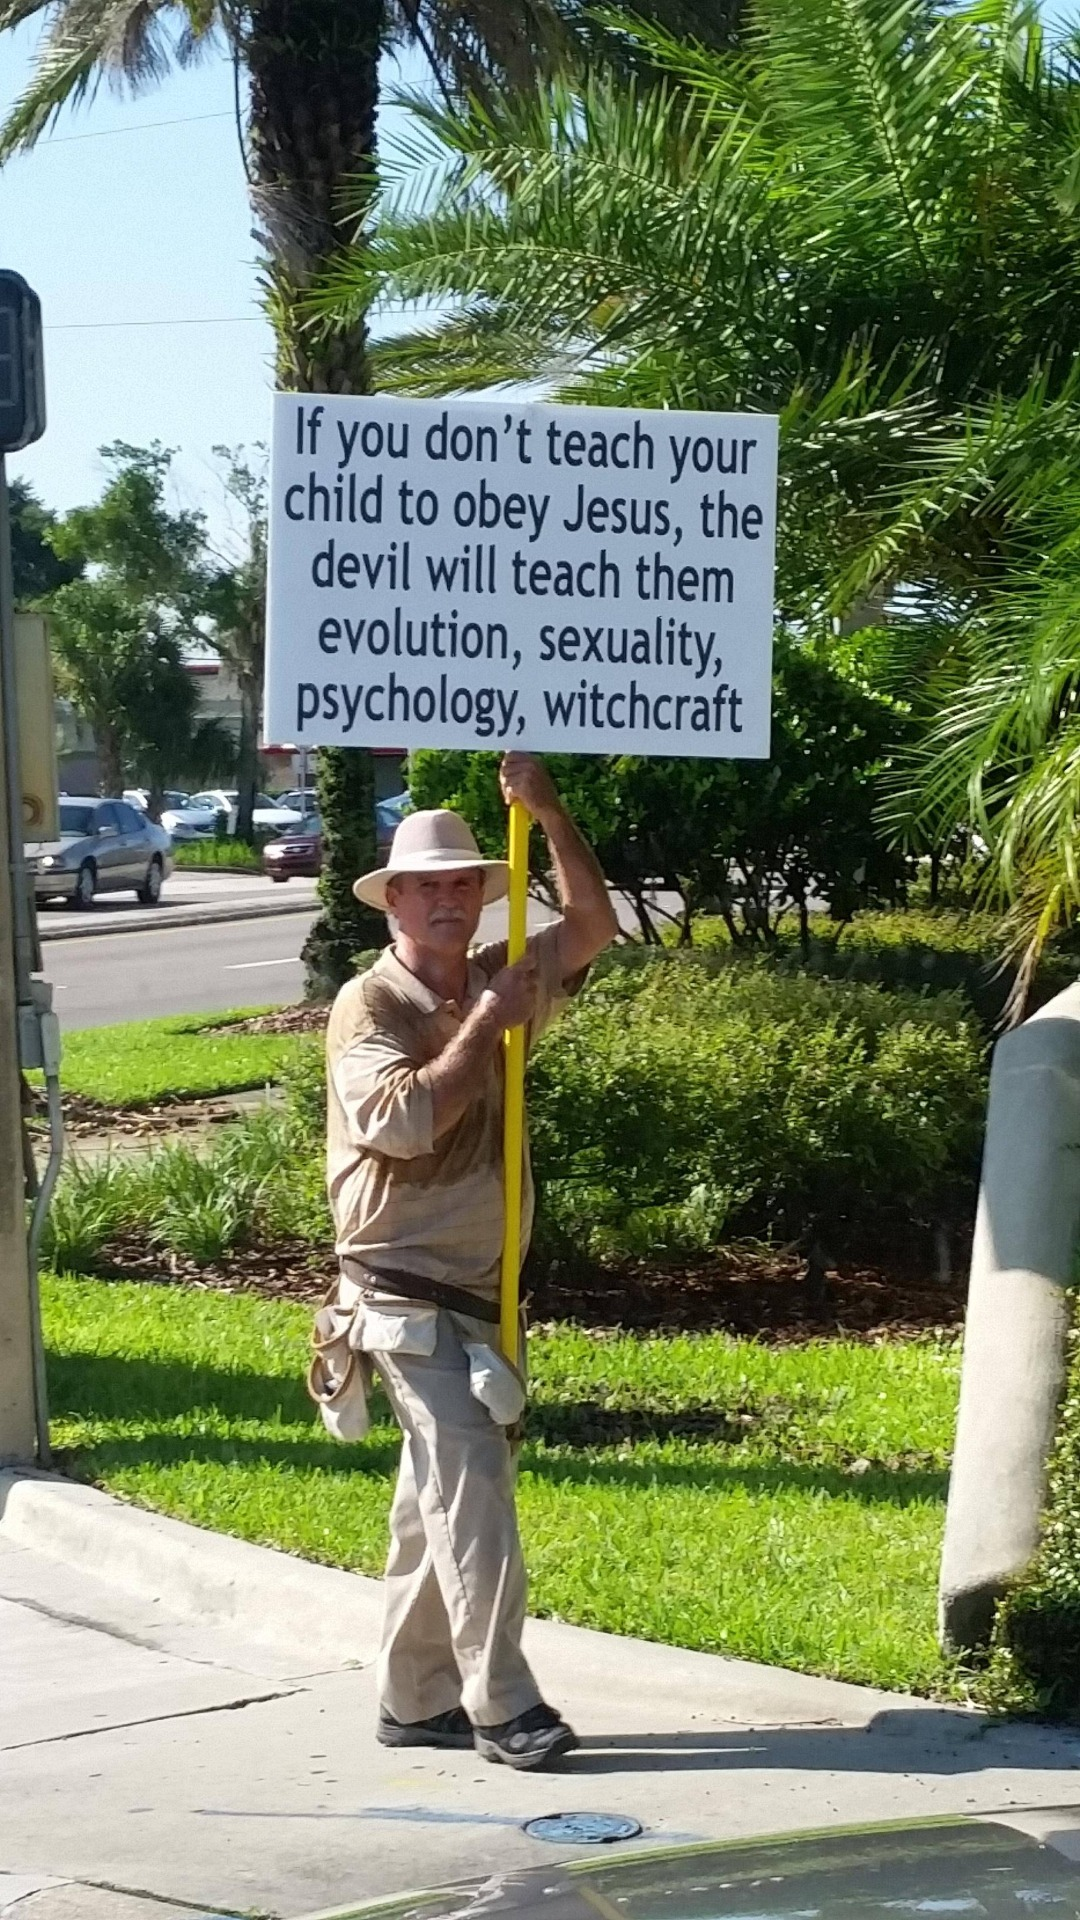 Evolution sexuality psychology witchcraft Evolution, sexuality, psychology, witchcraft